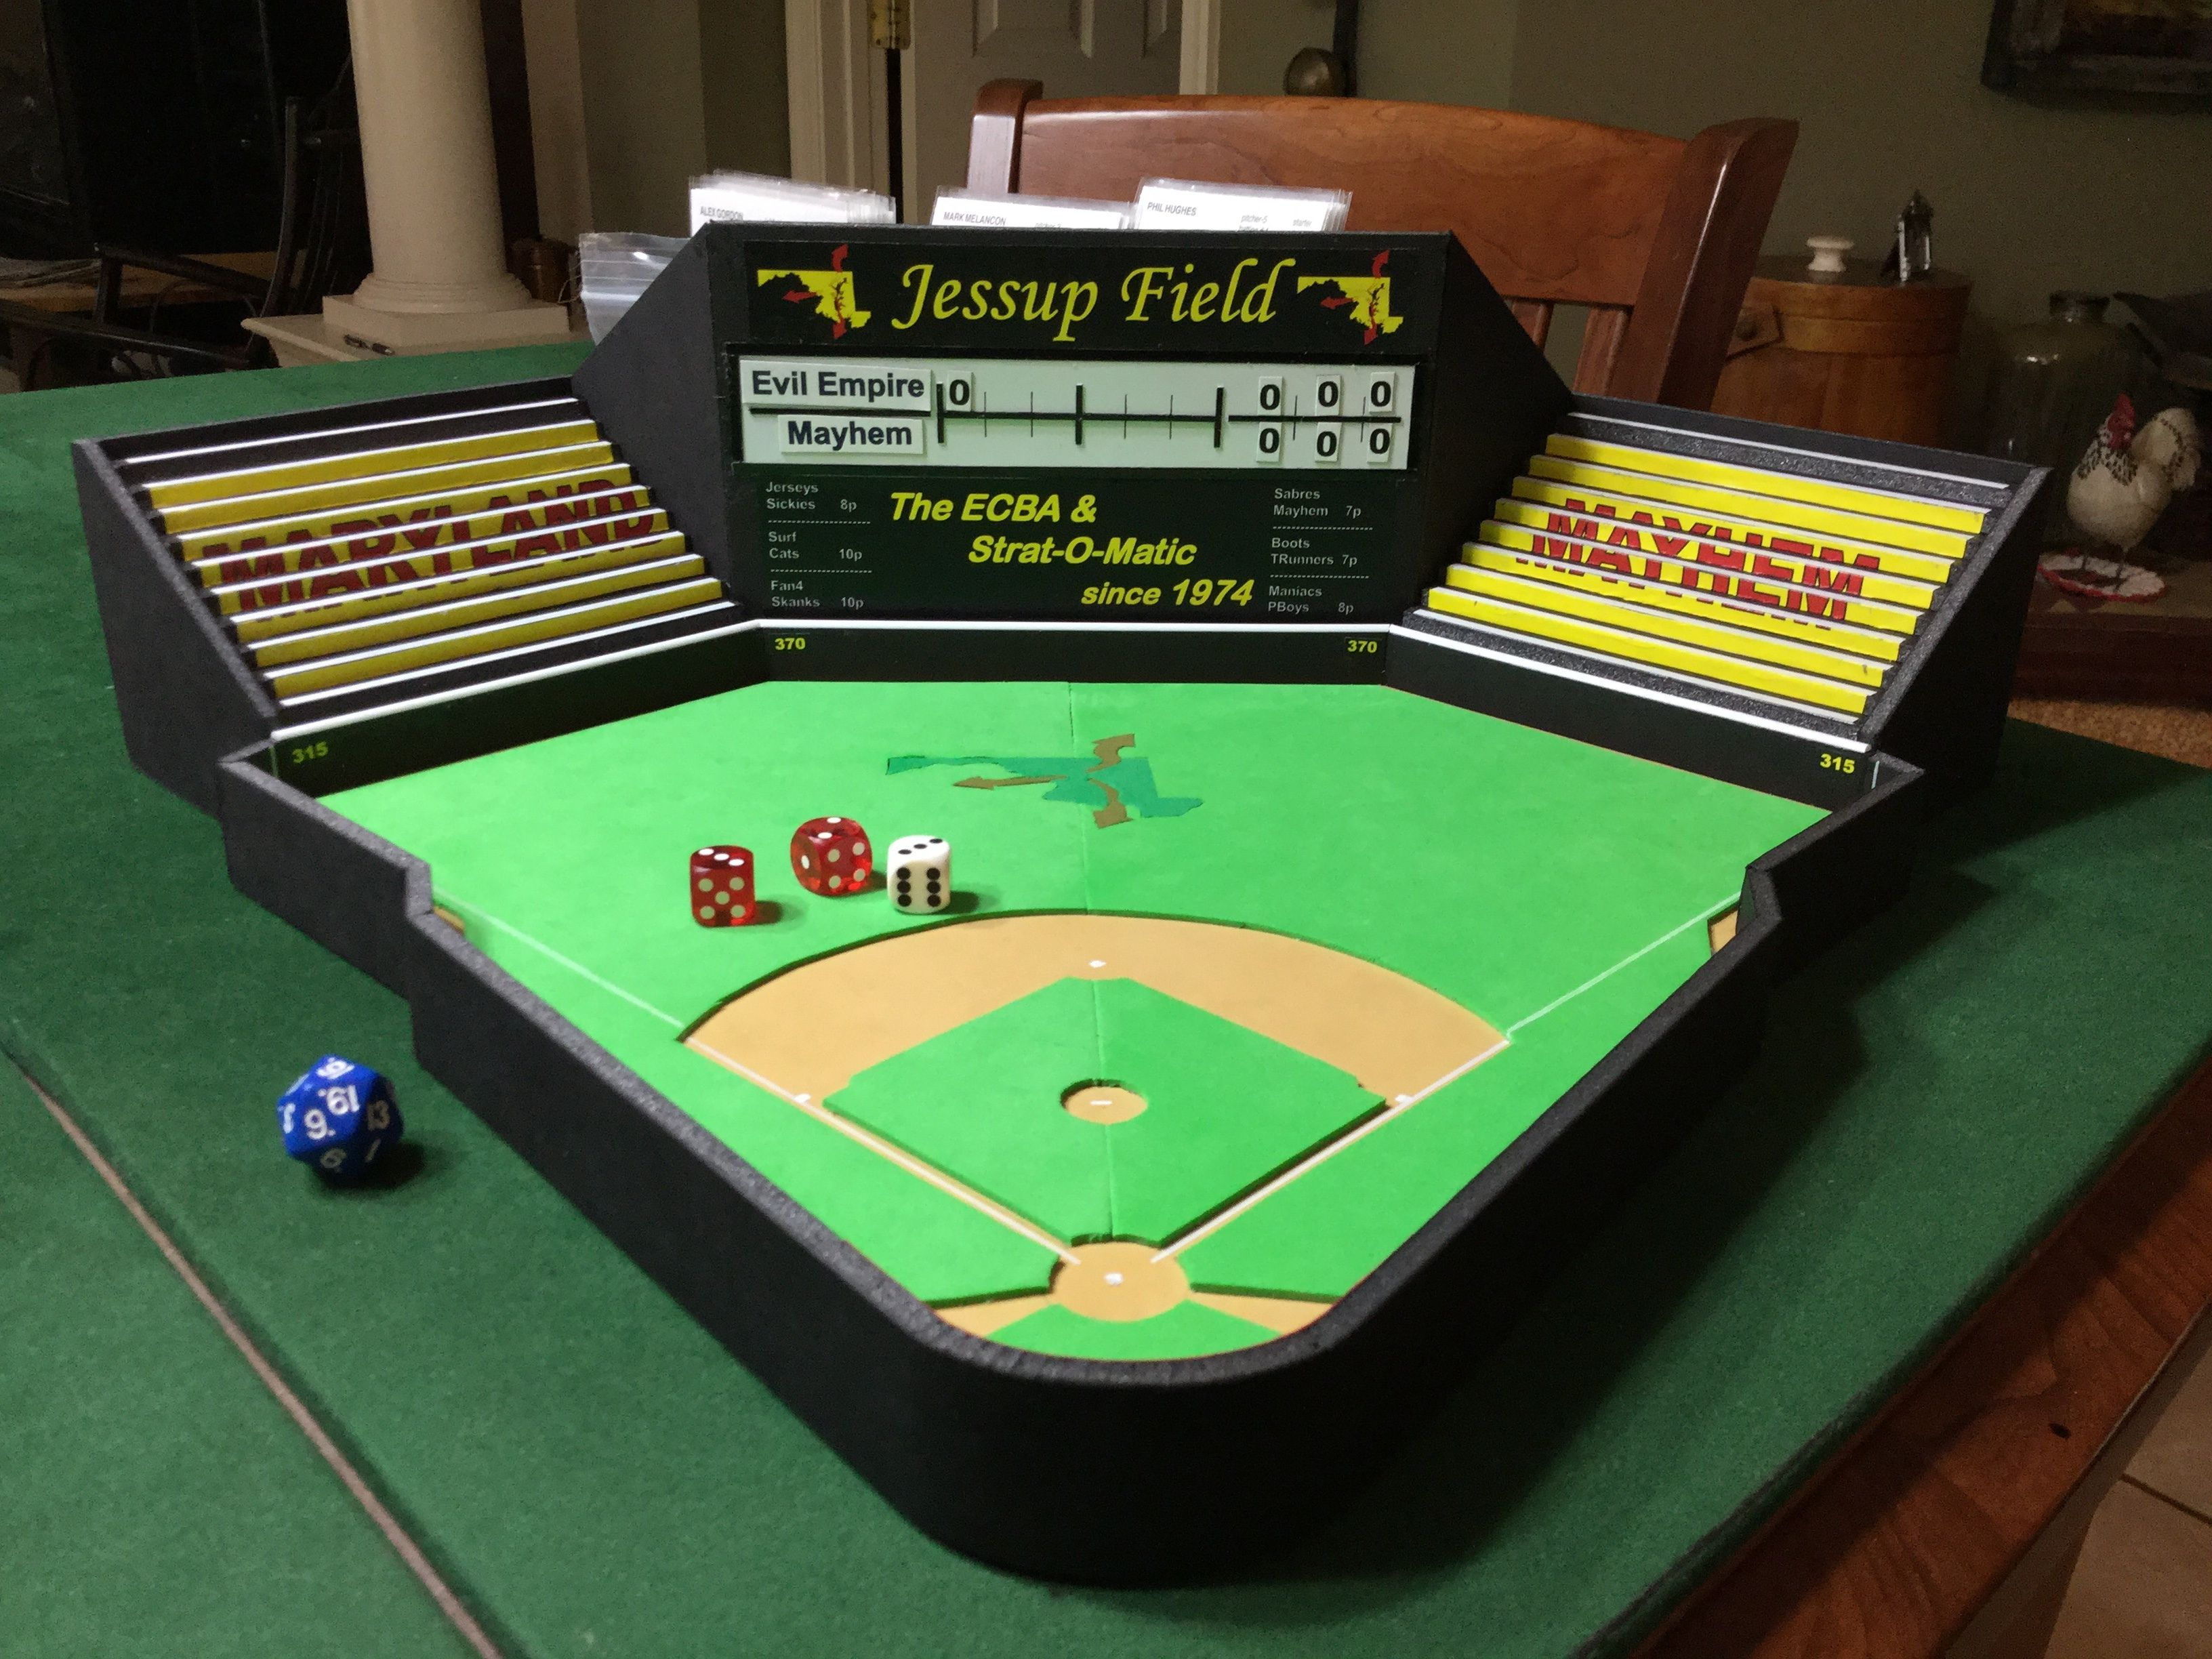 Check out this spectacular StratOMatic stadium designed